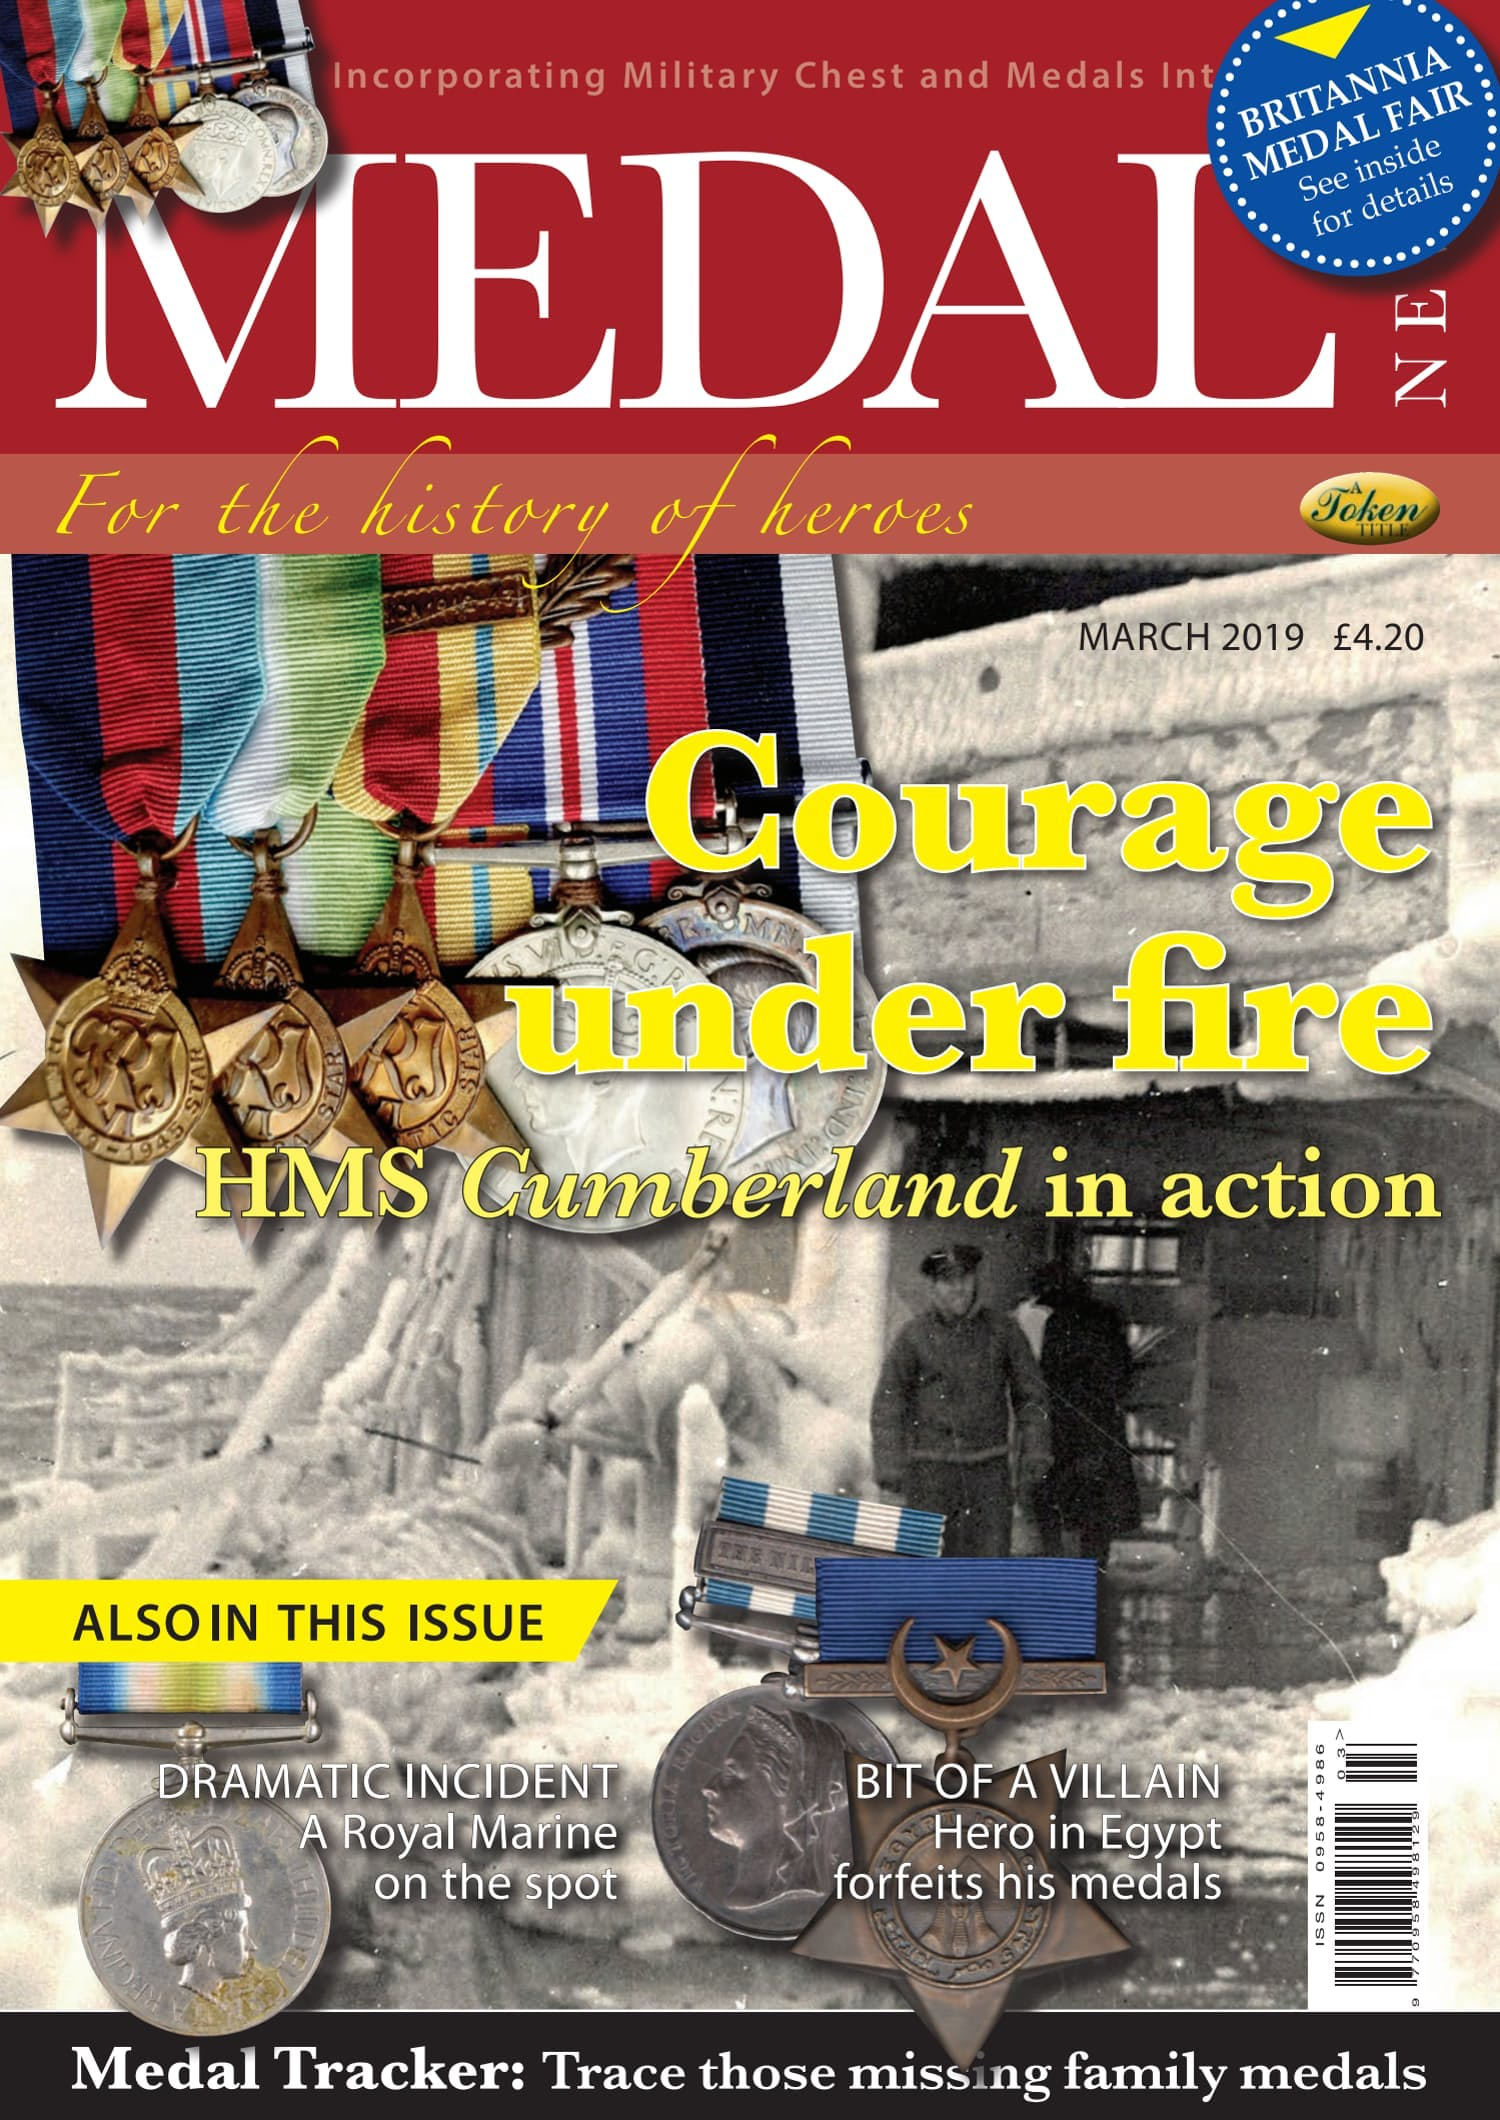 The front cover of Medal News, Volume 57, Number 3, March 2019